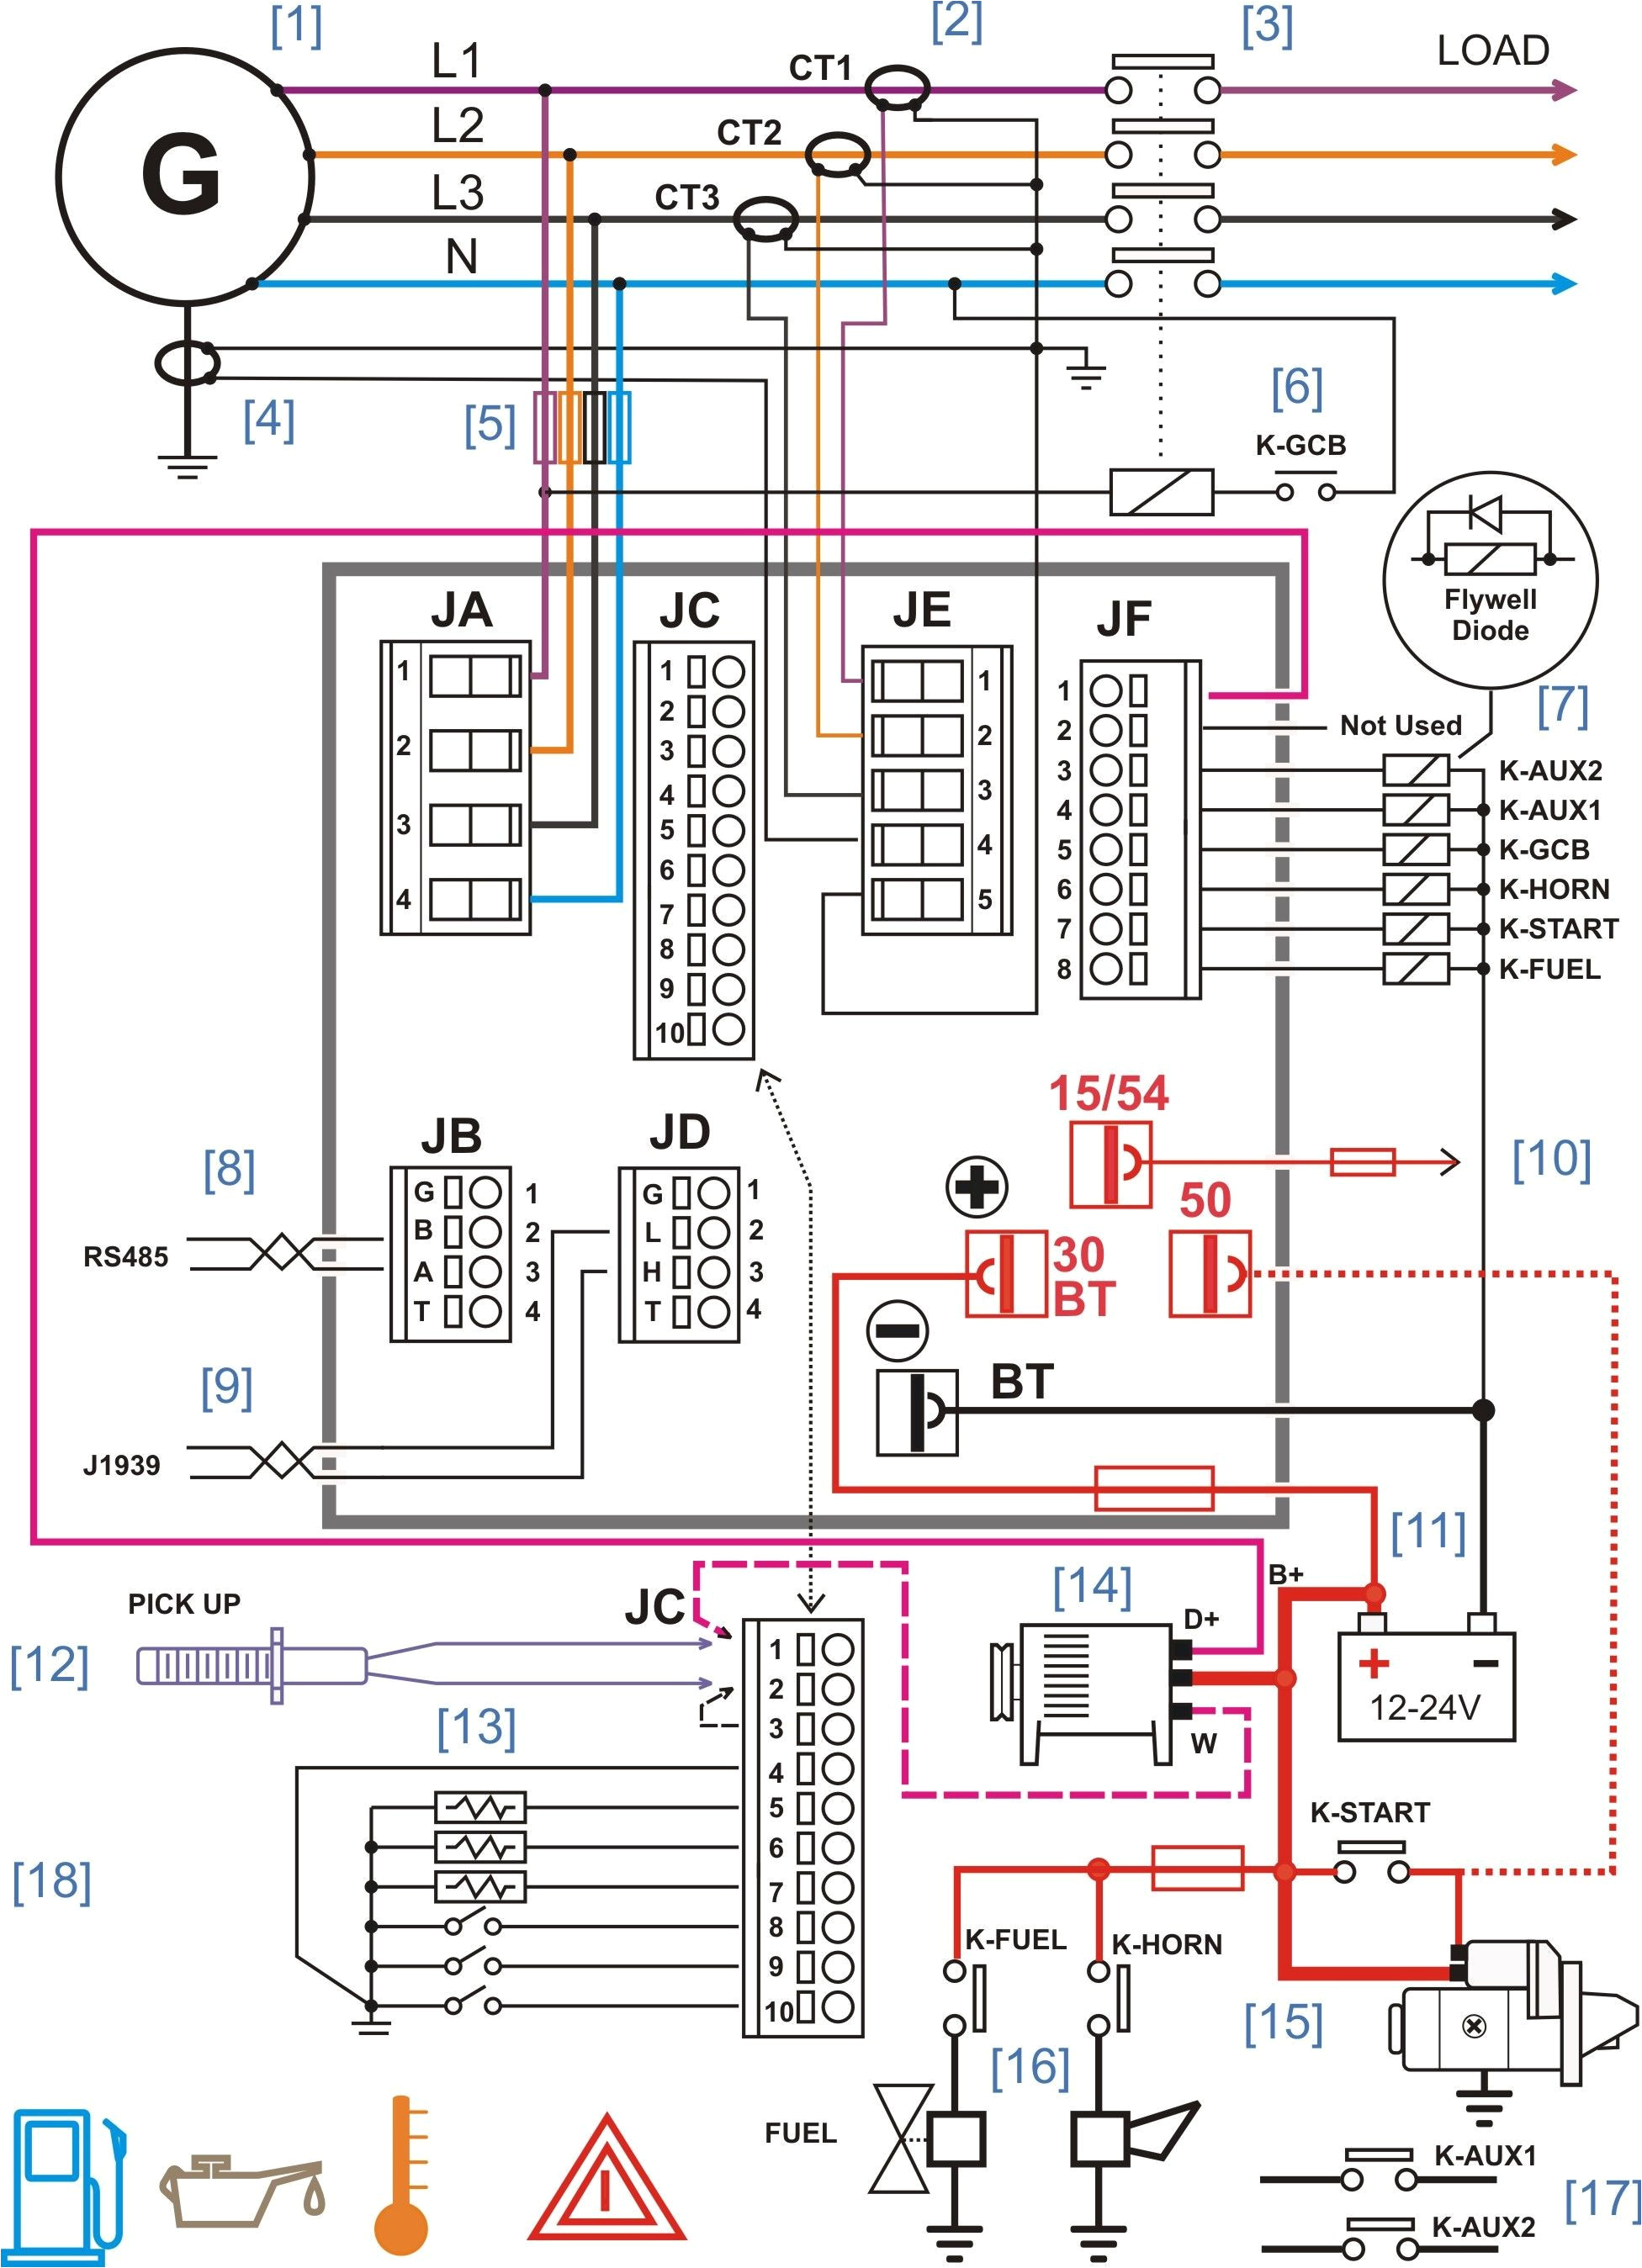 electrical house wiring diagram software house wiring diagram app refrence electrical wiring diagram software new 1a jpg